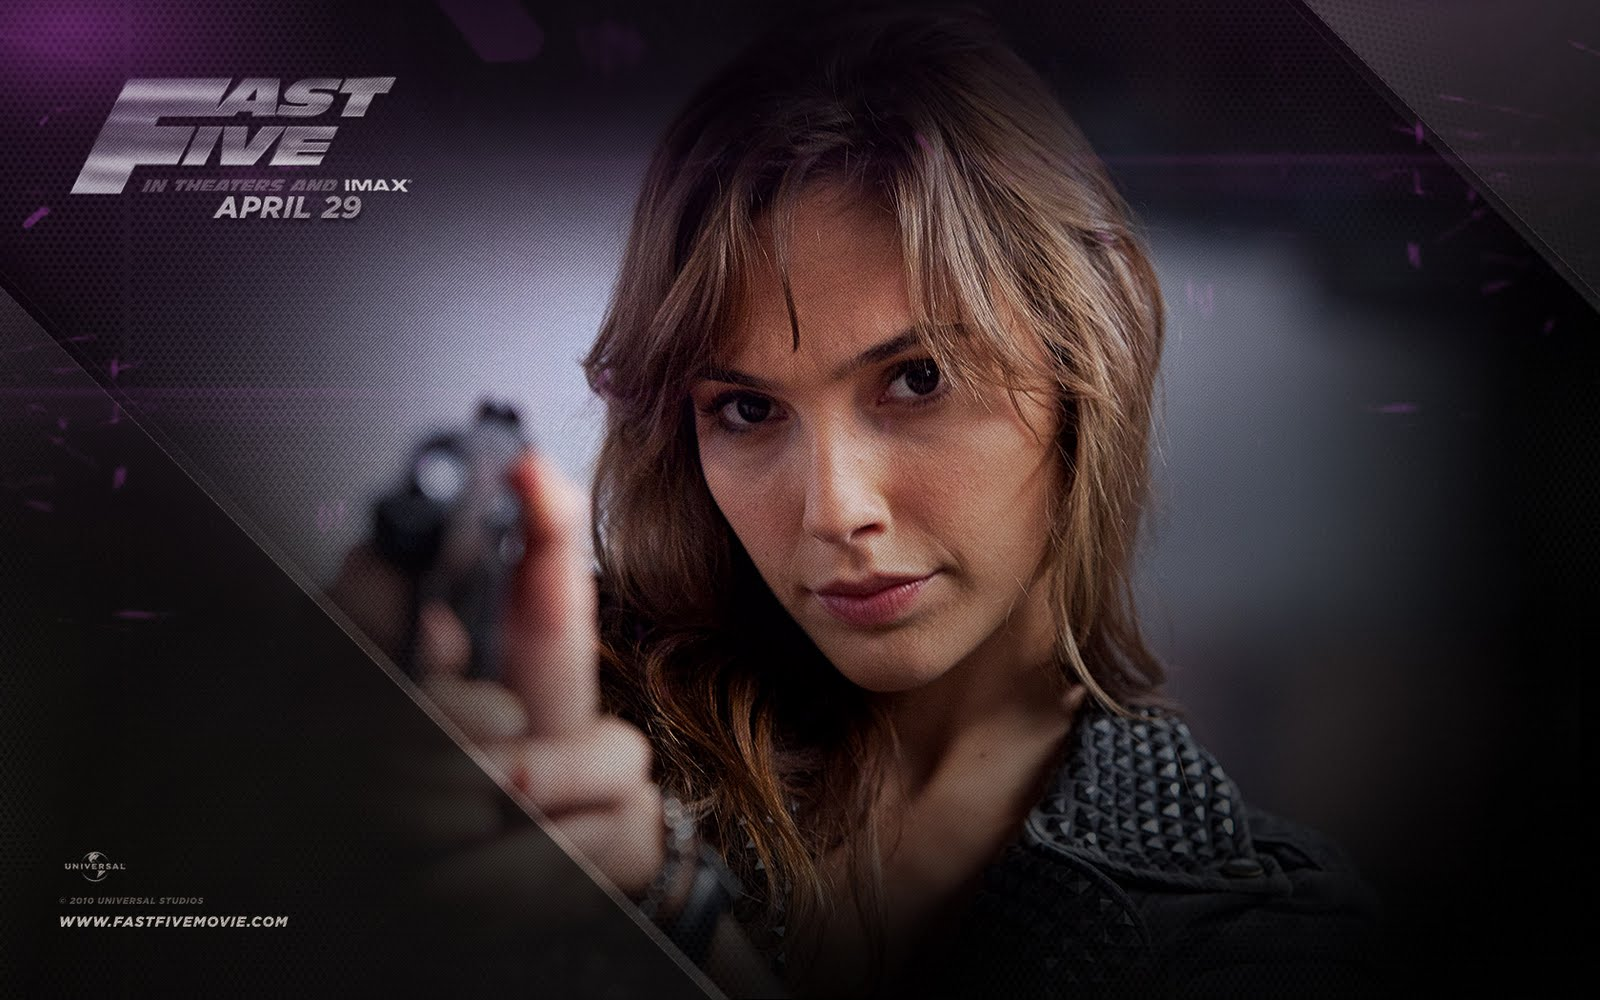 Fast Five Movie Wallpapers 2011 | Cute Girls Celebrity ...